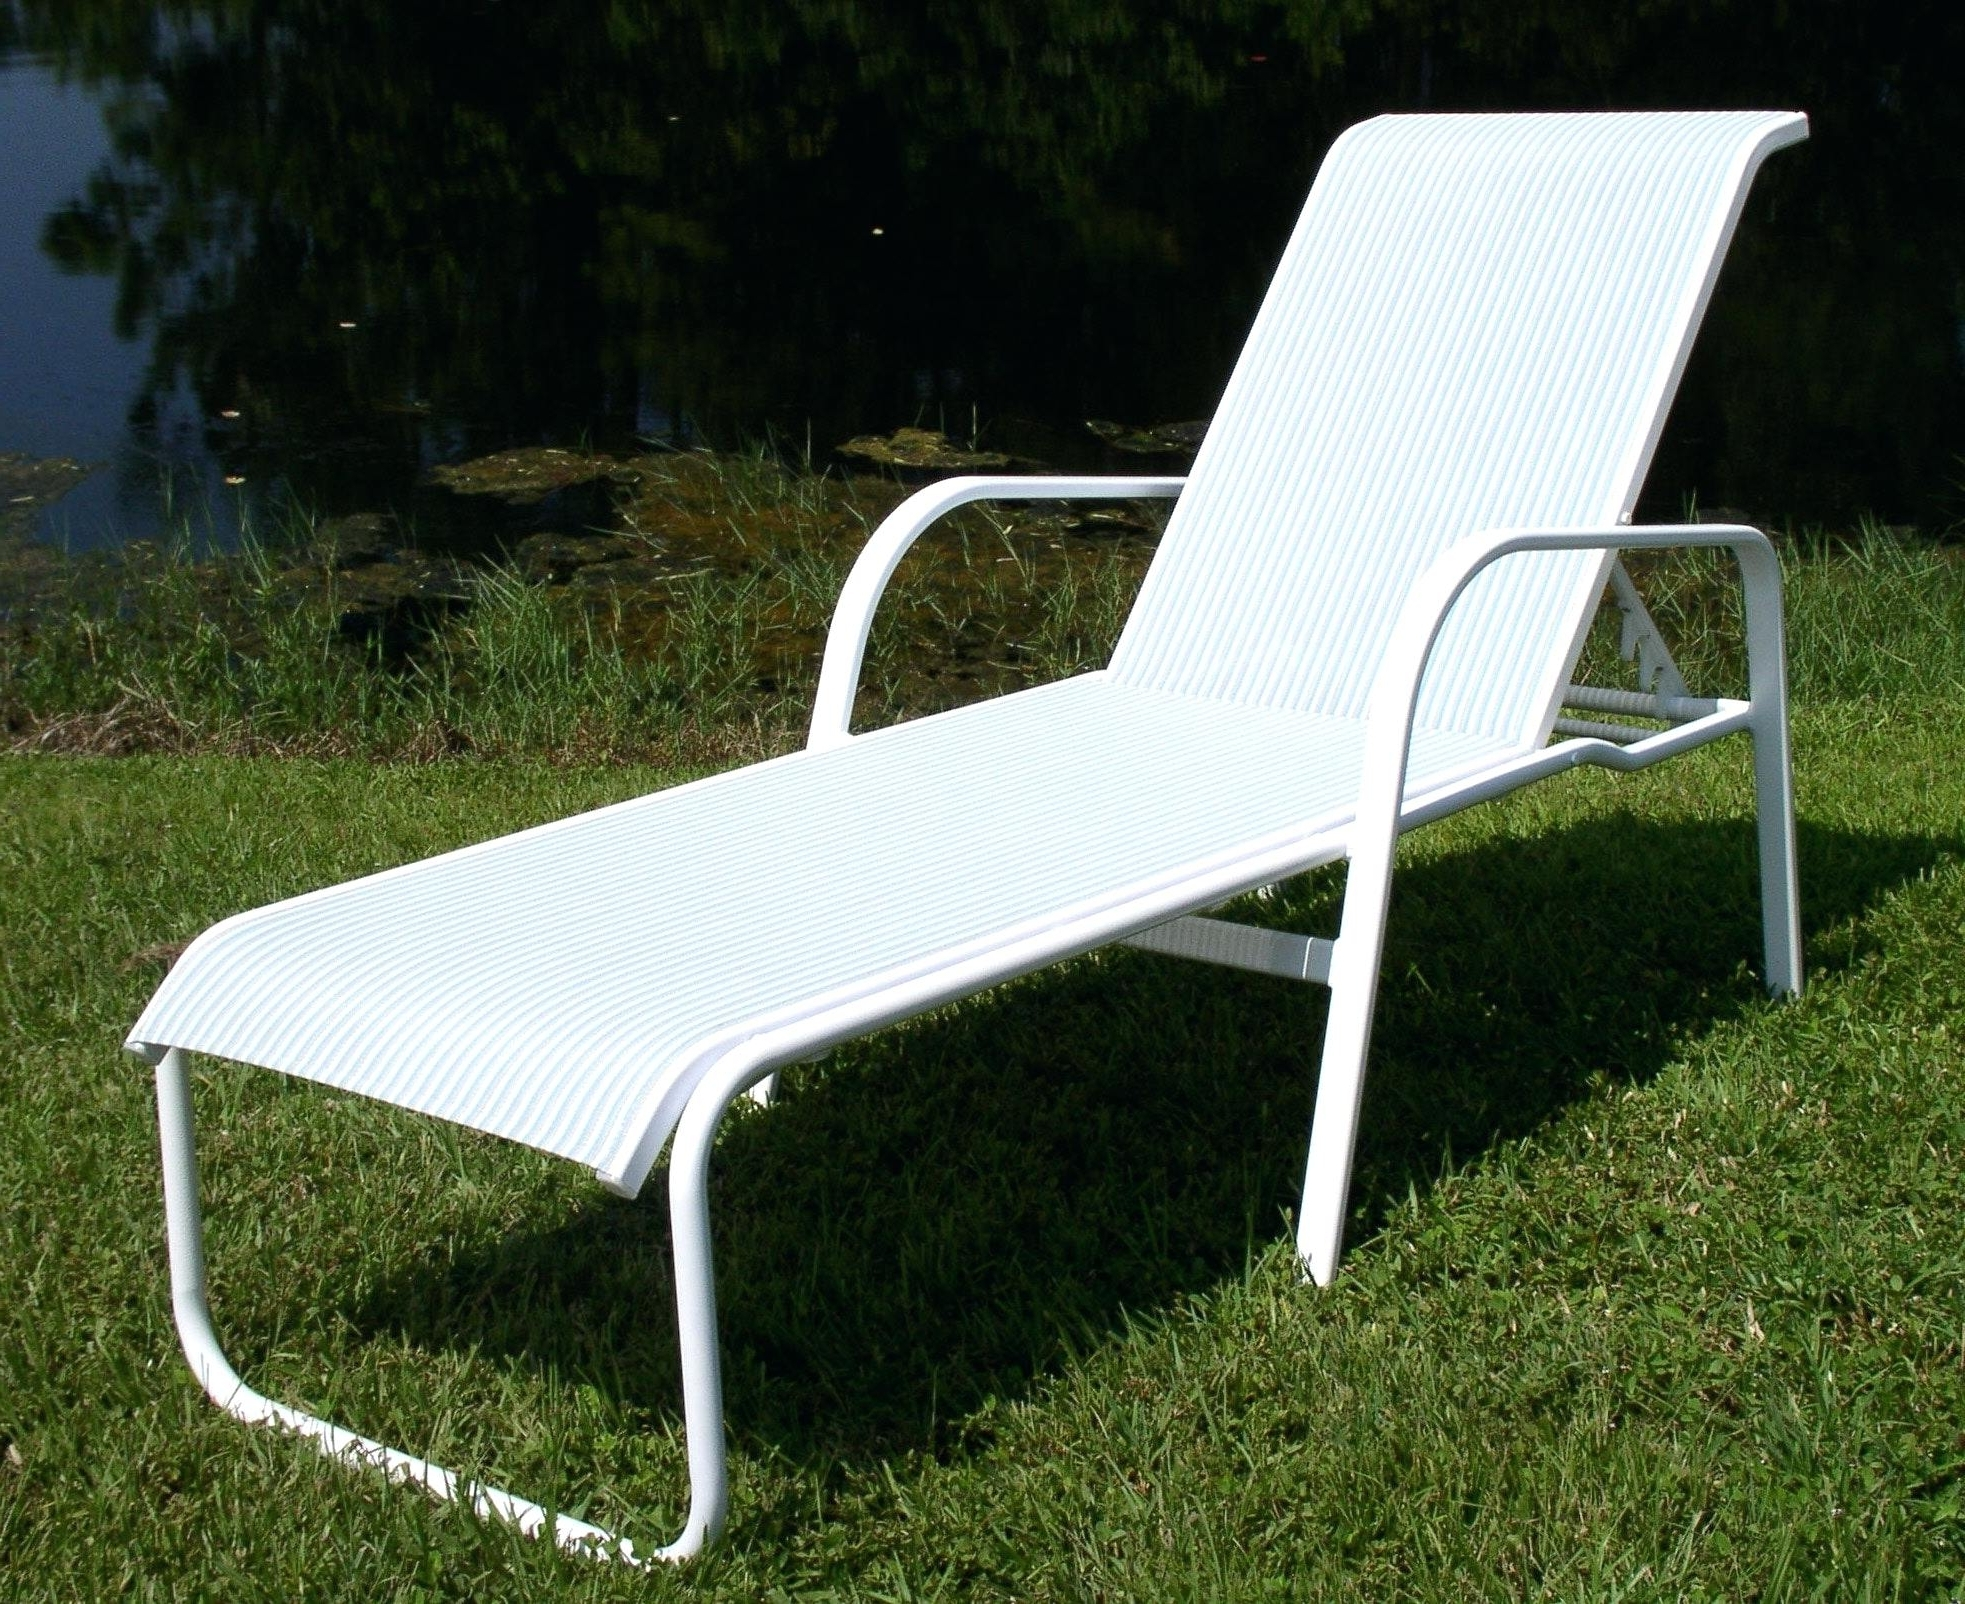 Latest Sears Chaise Lounge – Mariaalcocer With Sears Chaise Lounges (View 10 of 15)